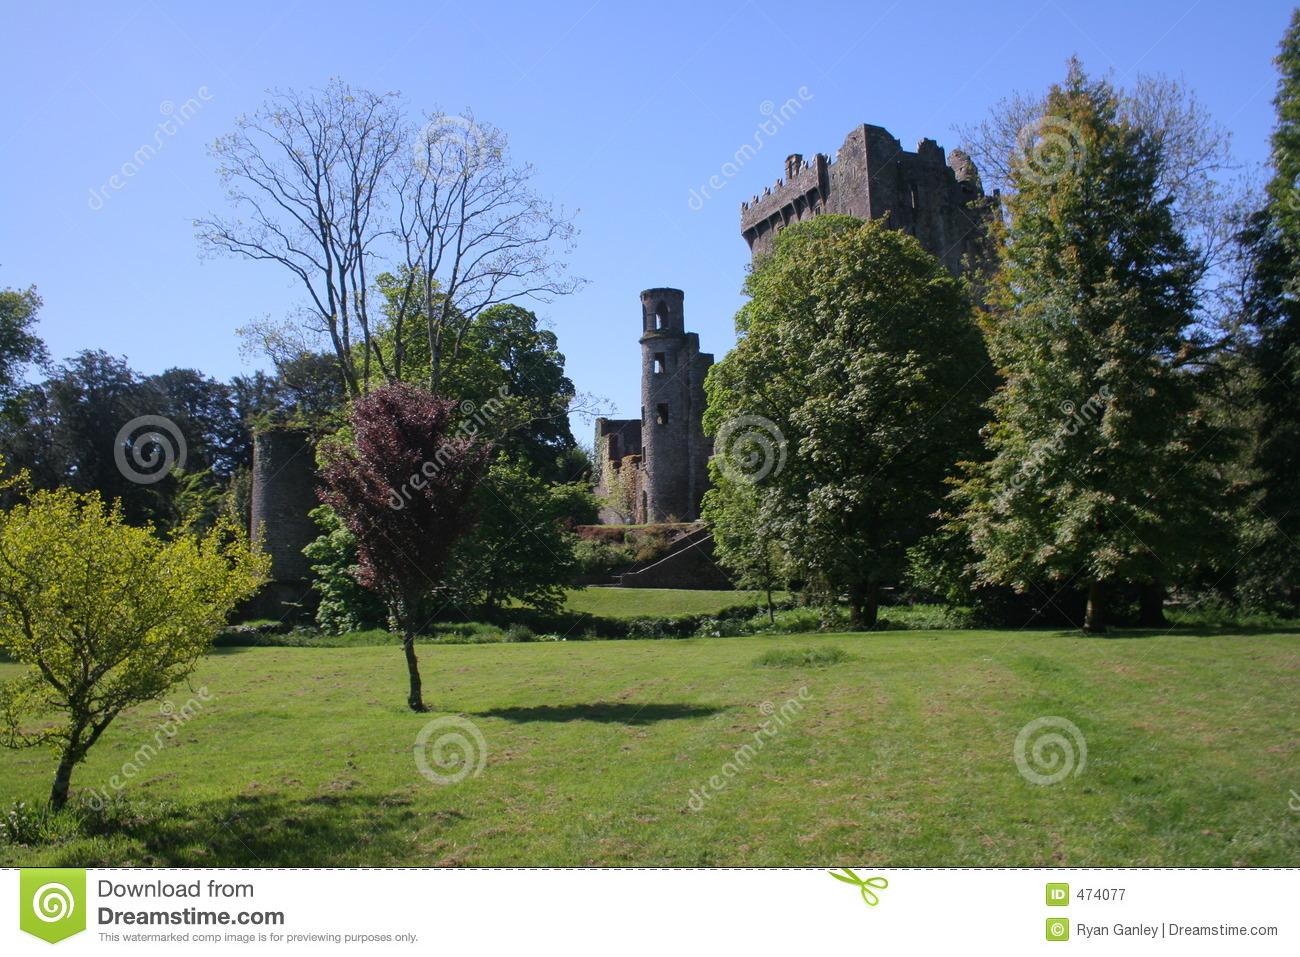 Blarney Castle and the field